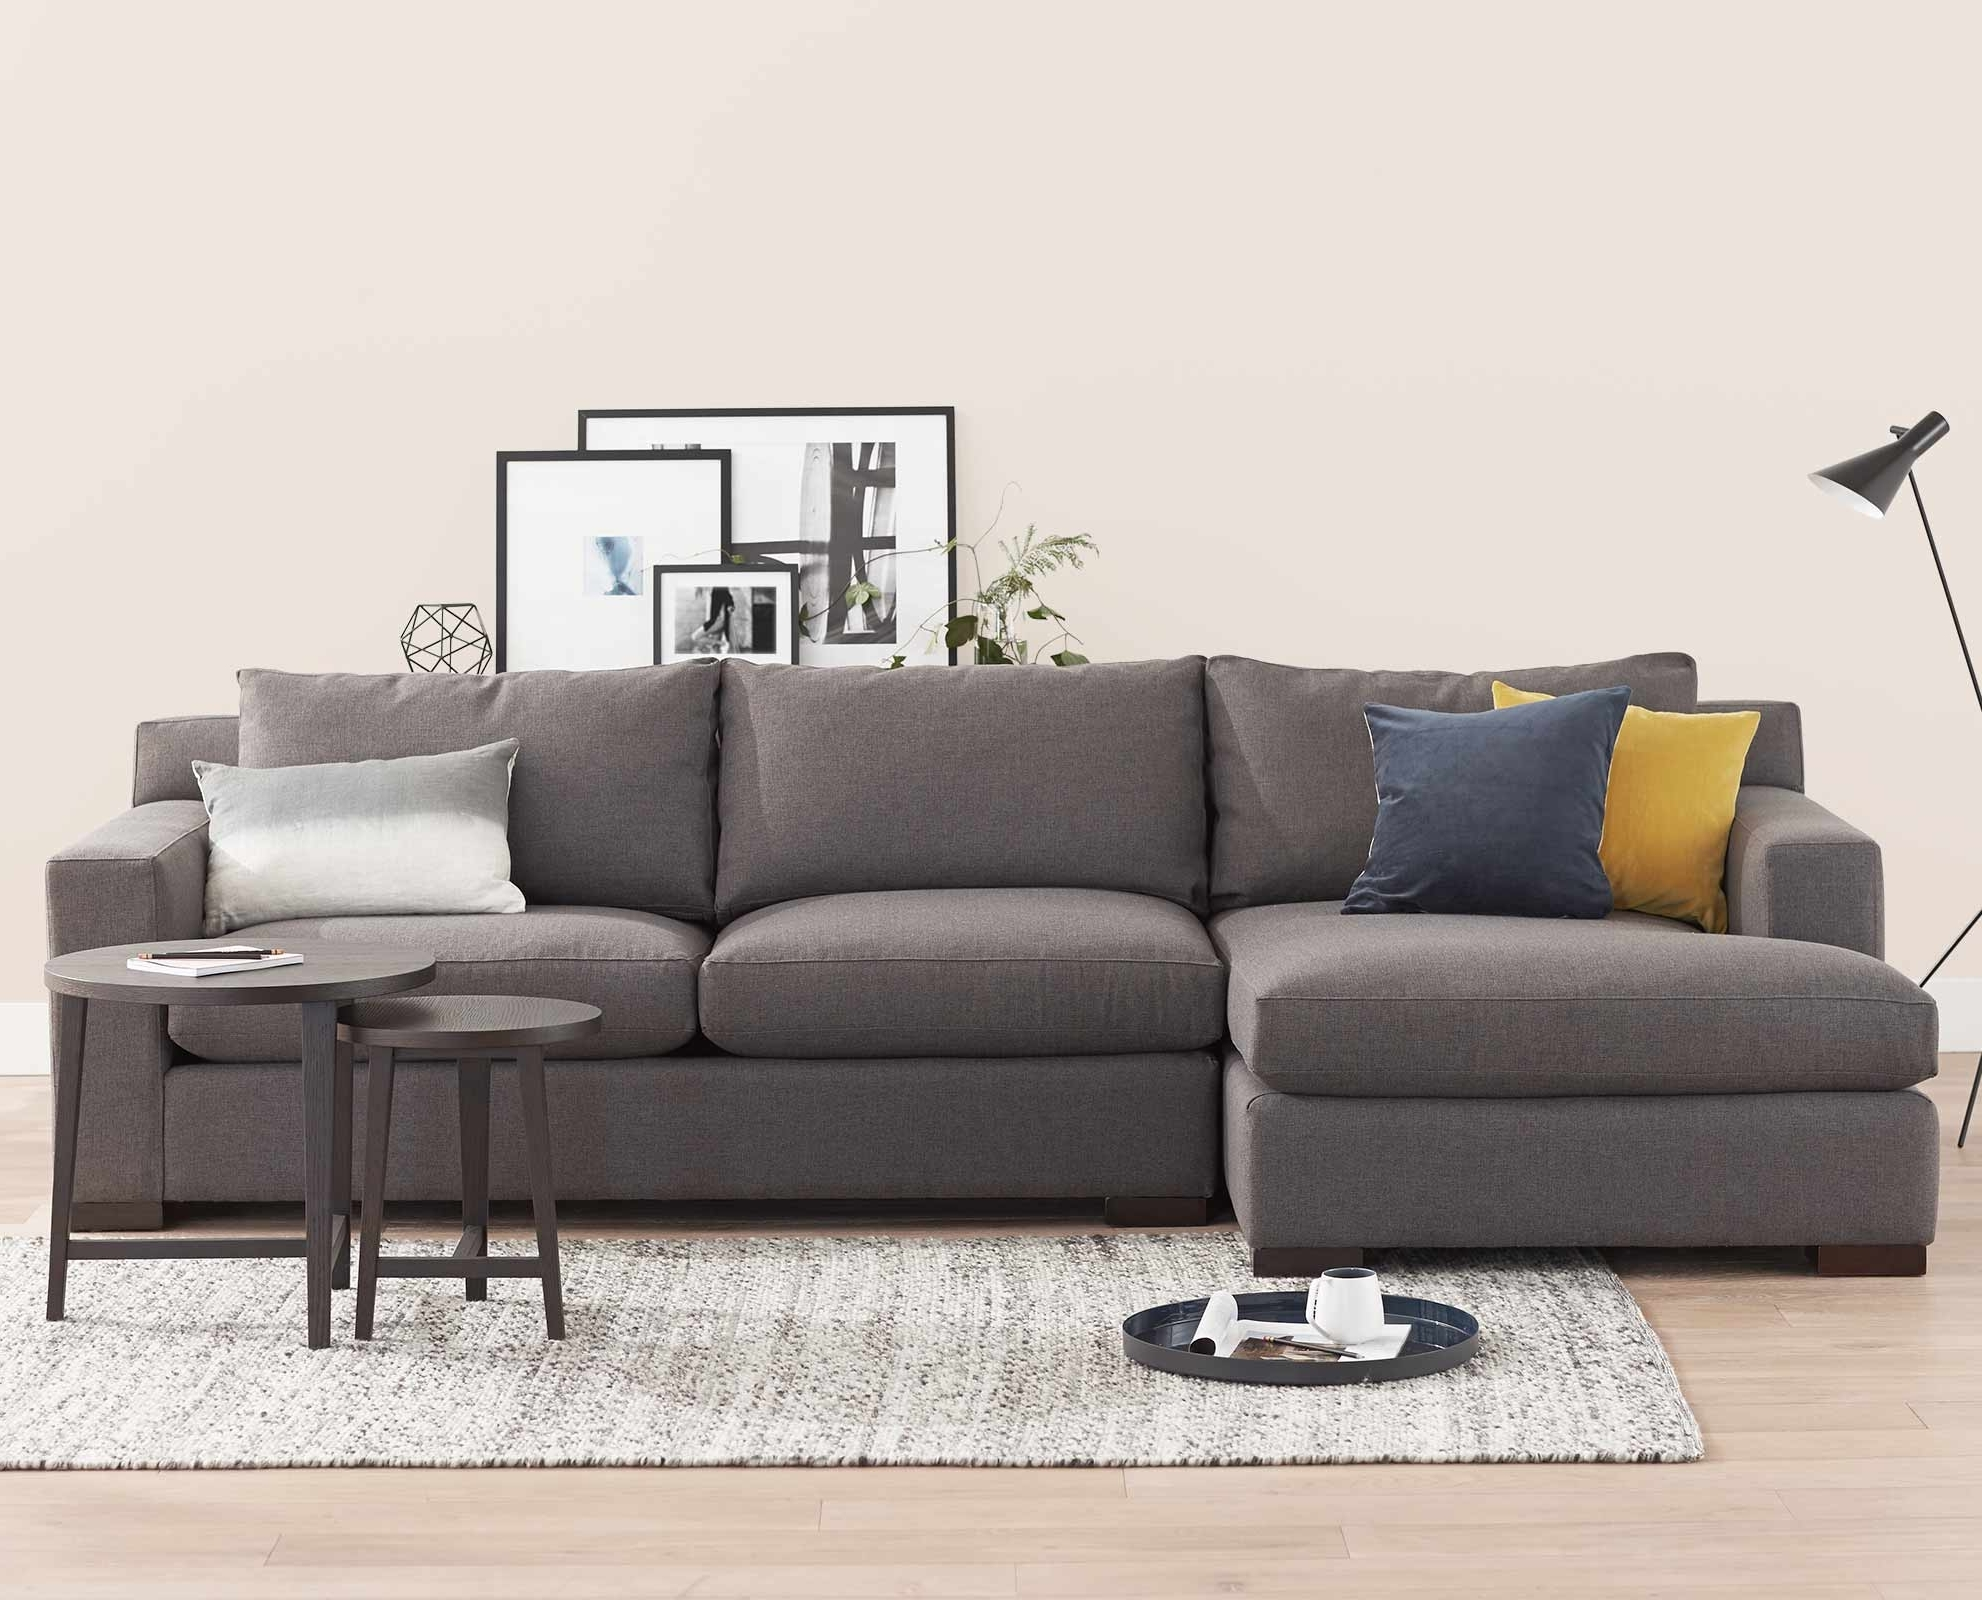 Scandinavian Designs – Always Cozy And Always Classic, The Aida Inside Well Liked Dania Sectional Sofas (View 9 of 15)